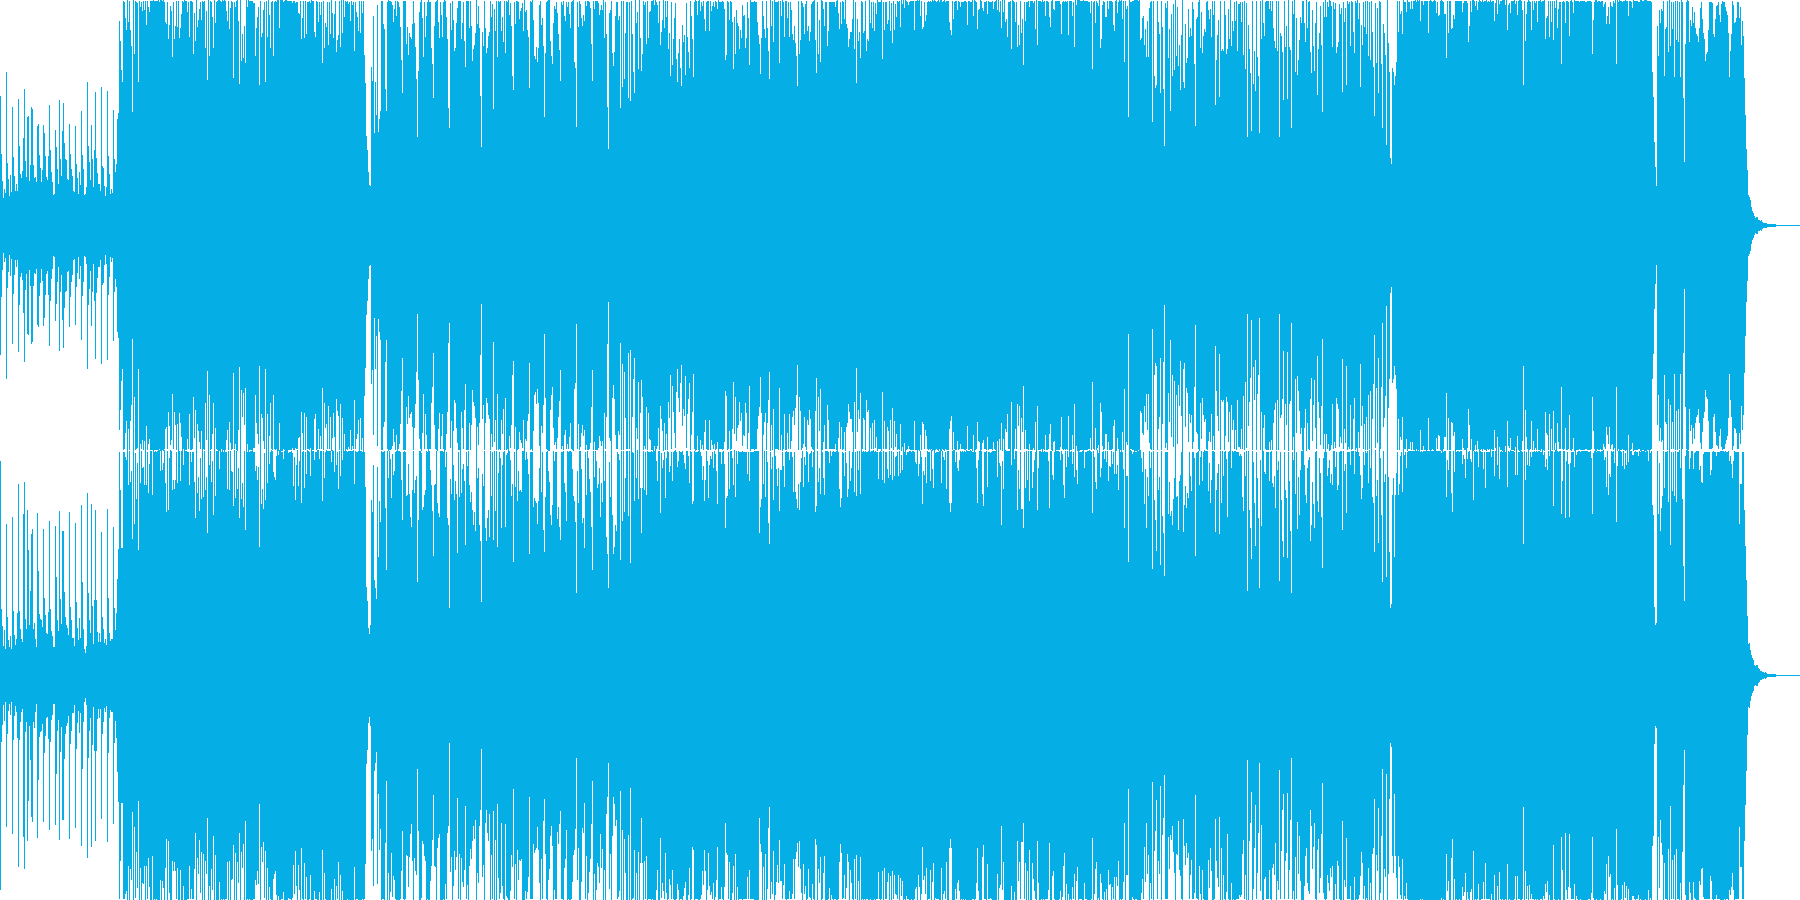 Shakuhachi is the main intense Japanese style lock's reproduced waveform